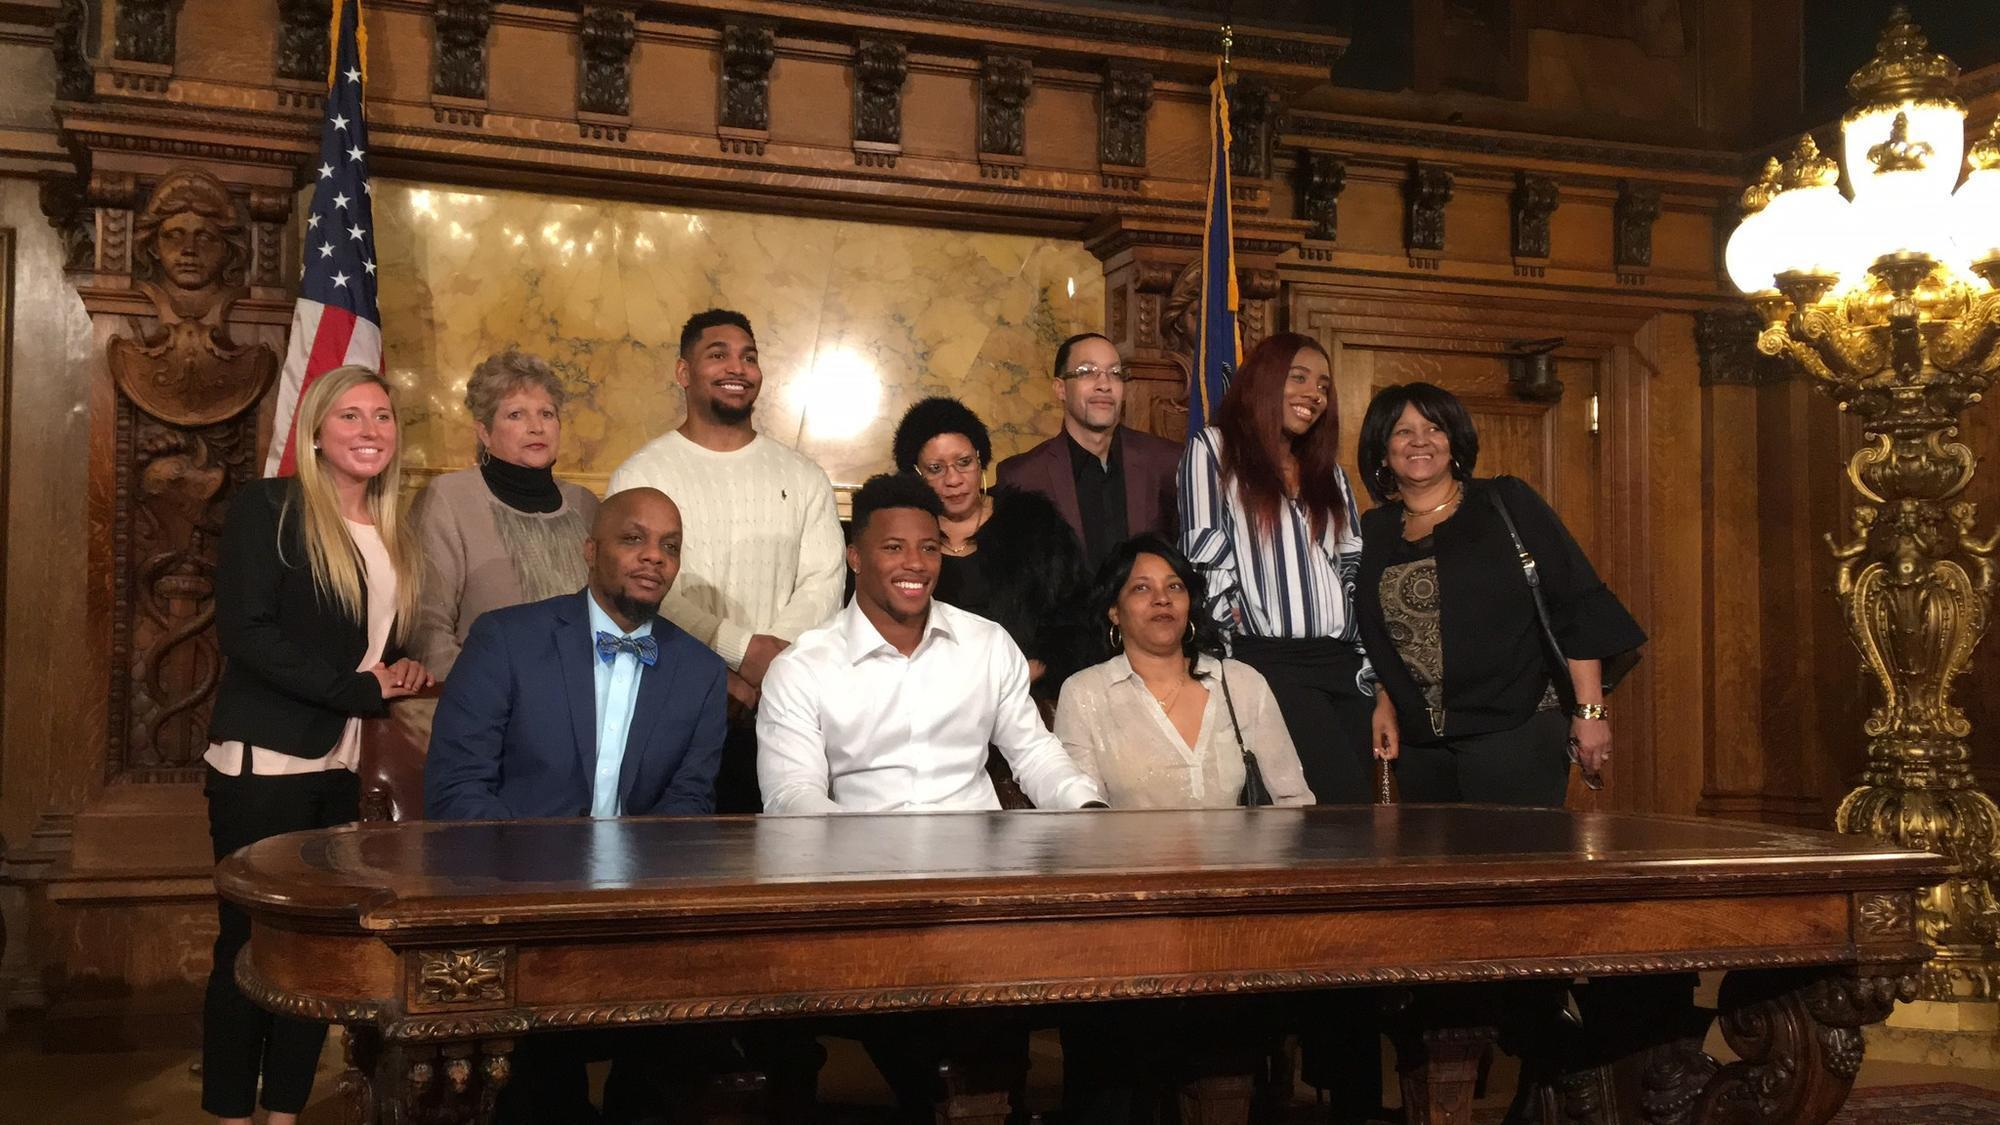 Mc-spt-pennsylvania-recognizes-saquon-barkley-day-20180314